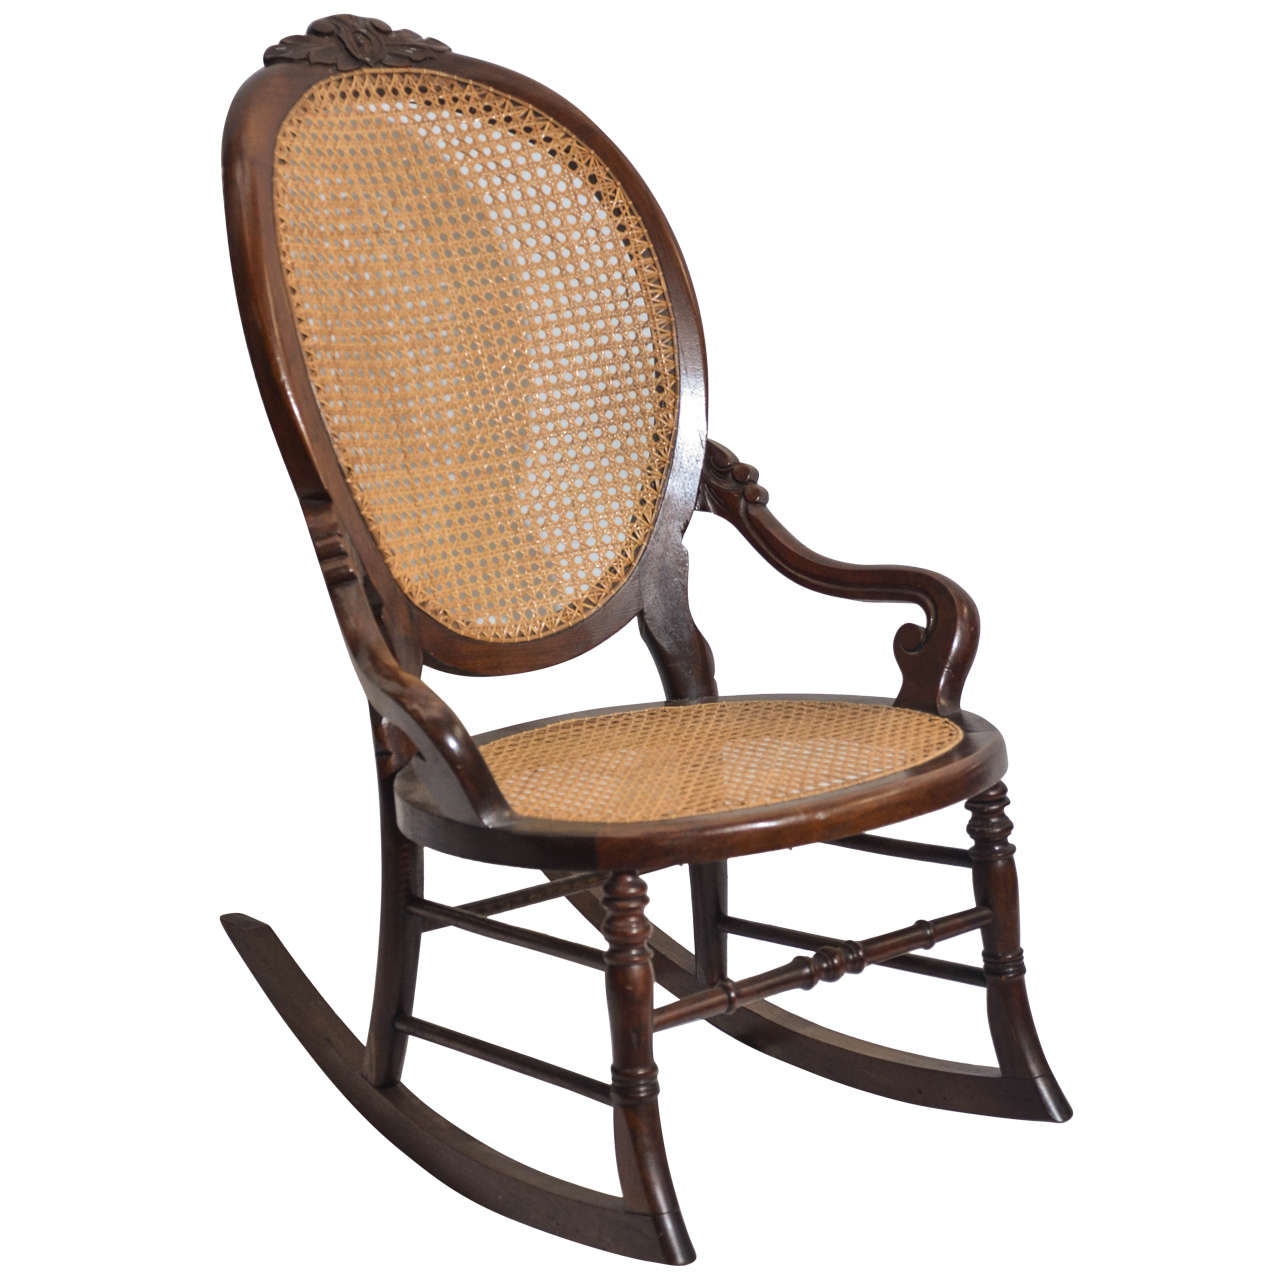 Antique cane rocking chairs - Victorian Walnut Lady S Rocking Chair